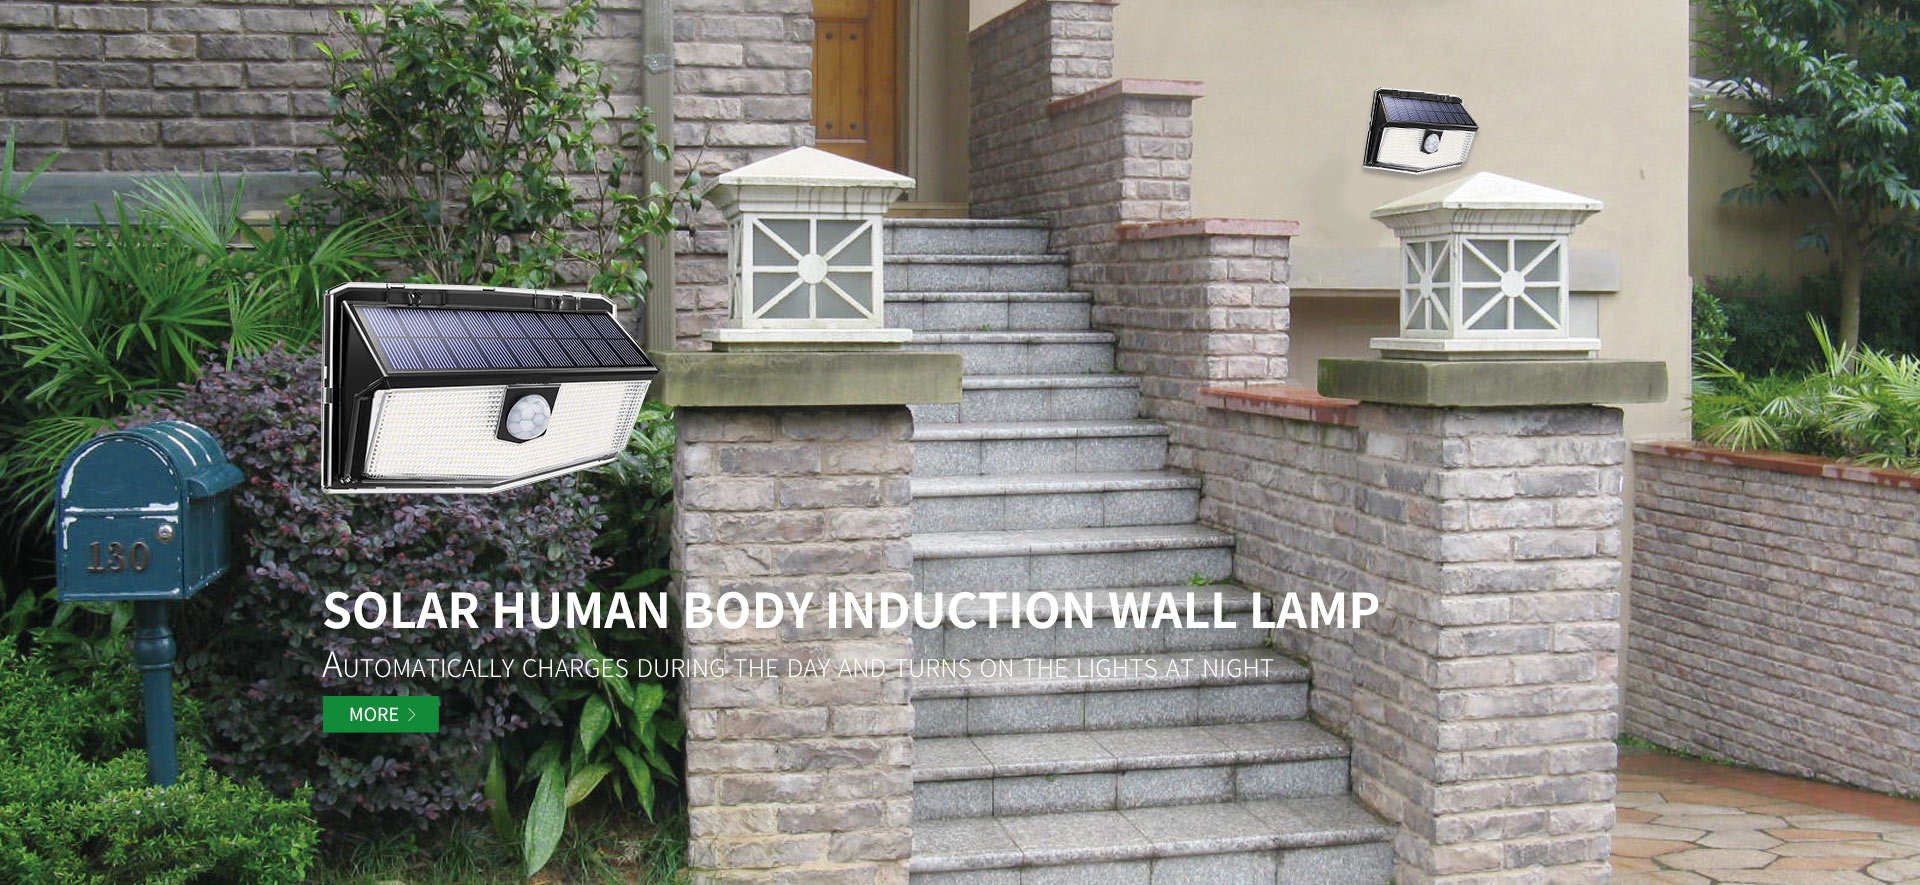 SOLAR HUMAN BODY INDUCTION WALL LAMP